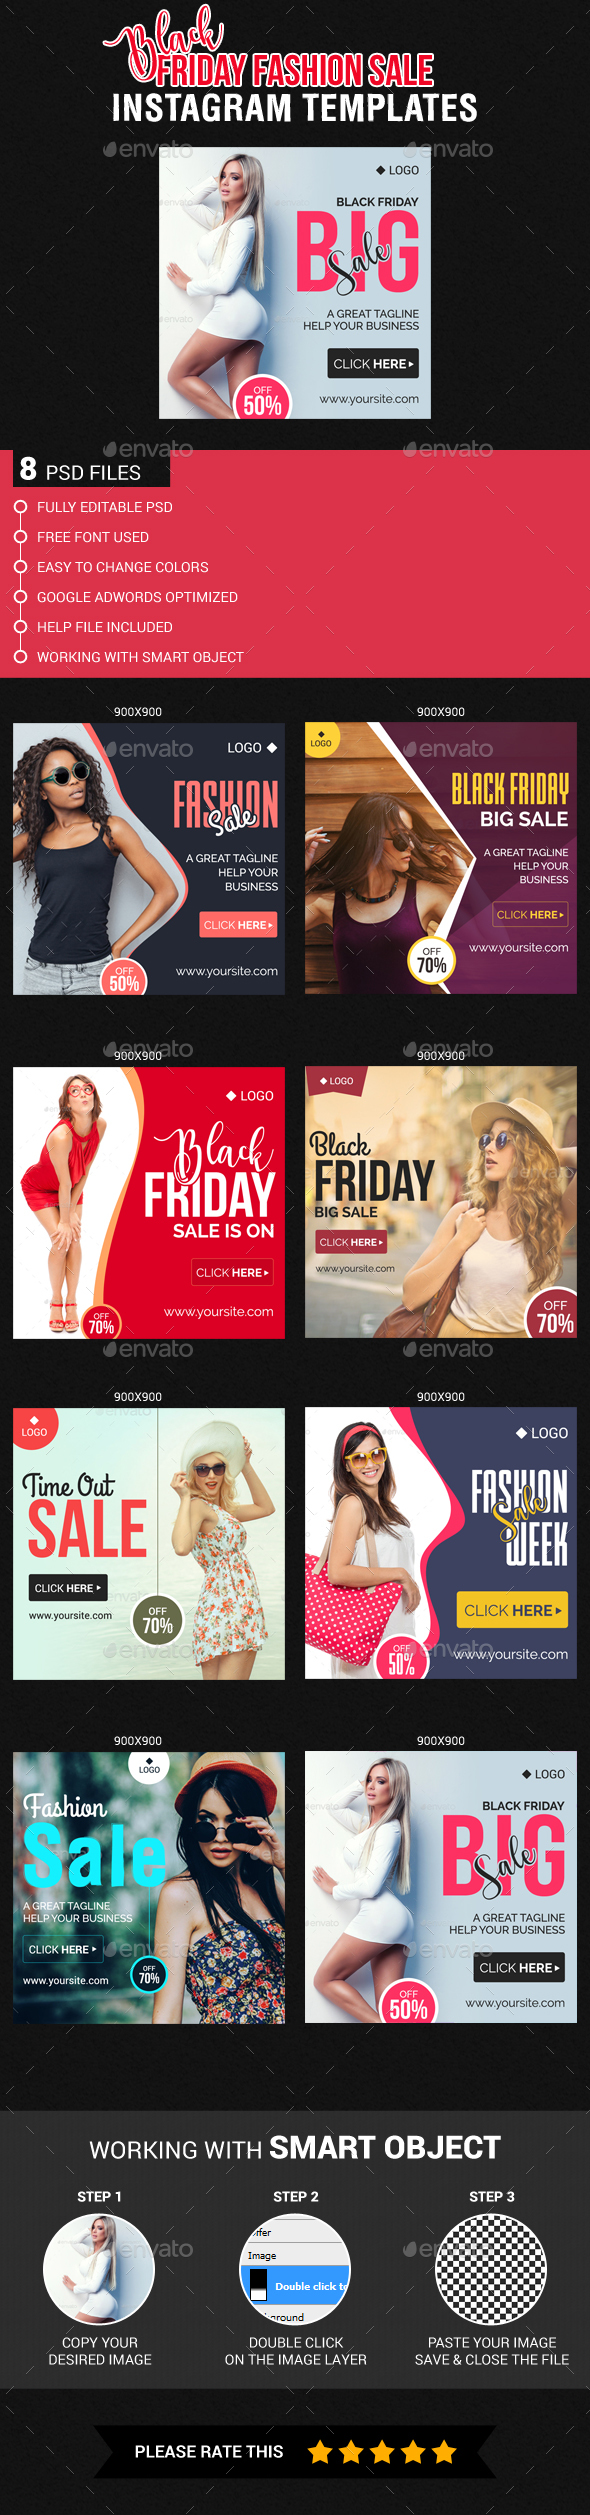 Black Friday Fashion Sale Instagram Templates - Banners & Ads Web Elements